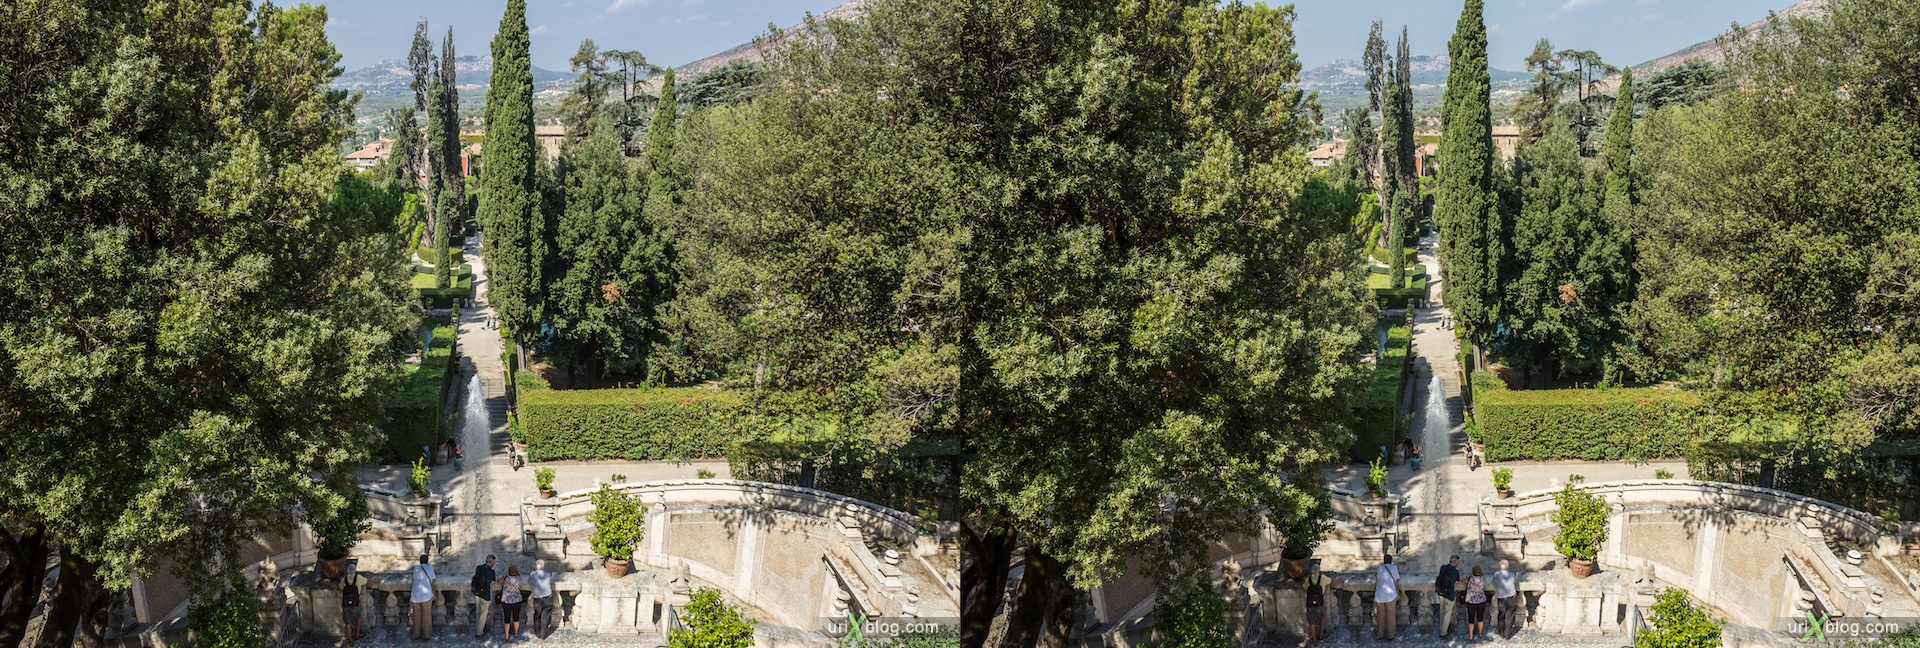 2012, Fountain of the Dragons, villa D'Este, Italy, Tivoli, Rome, 3D, stereo pair, cross-eyed, crossview, cross view stereo pair